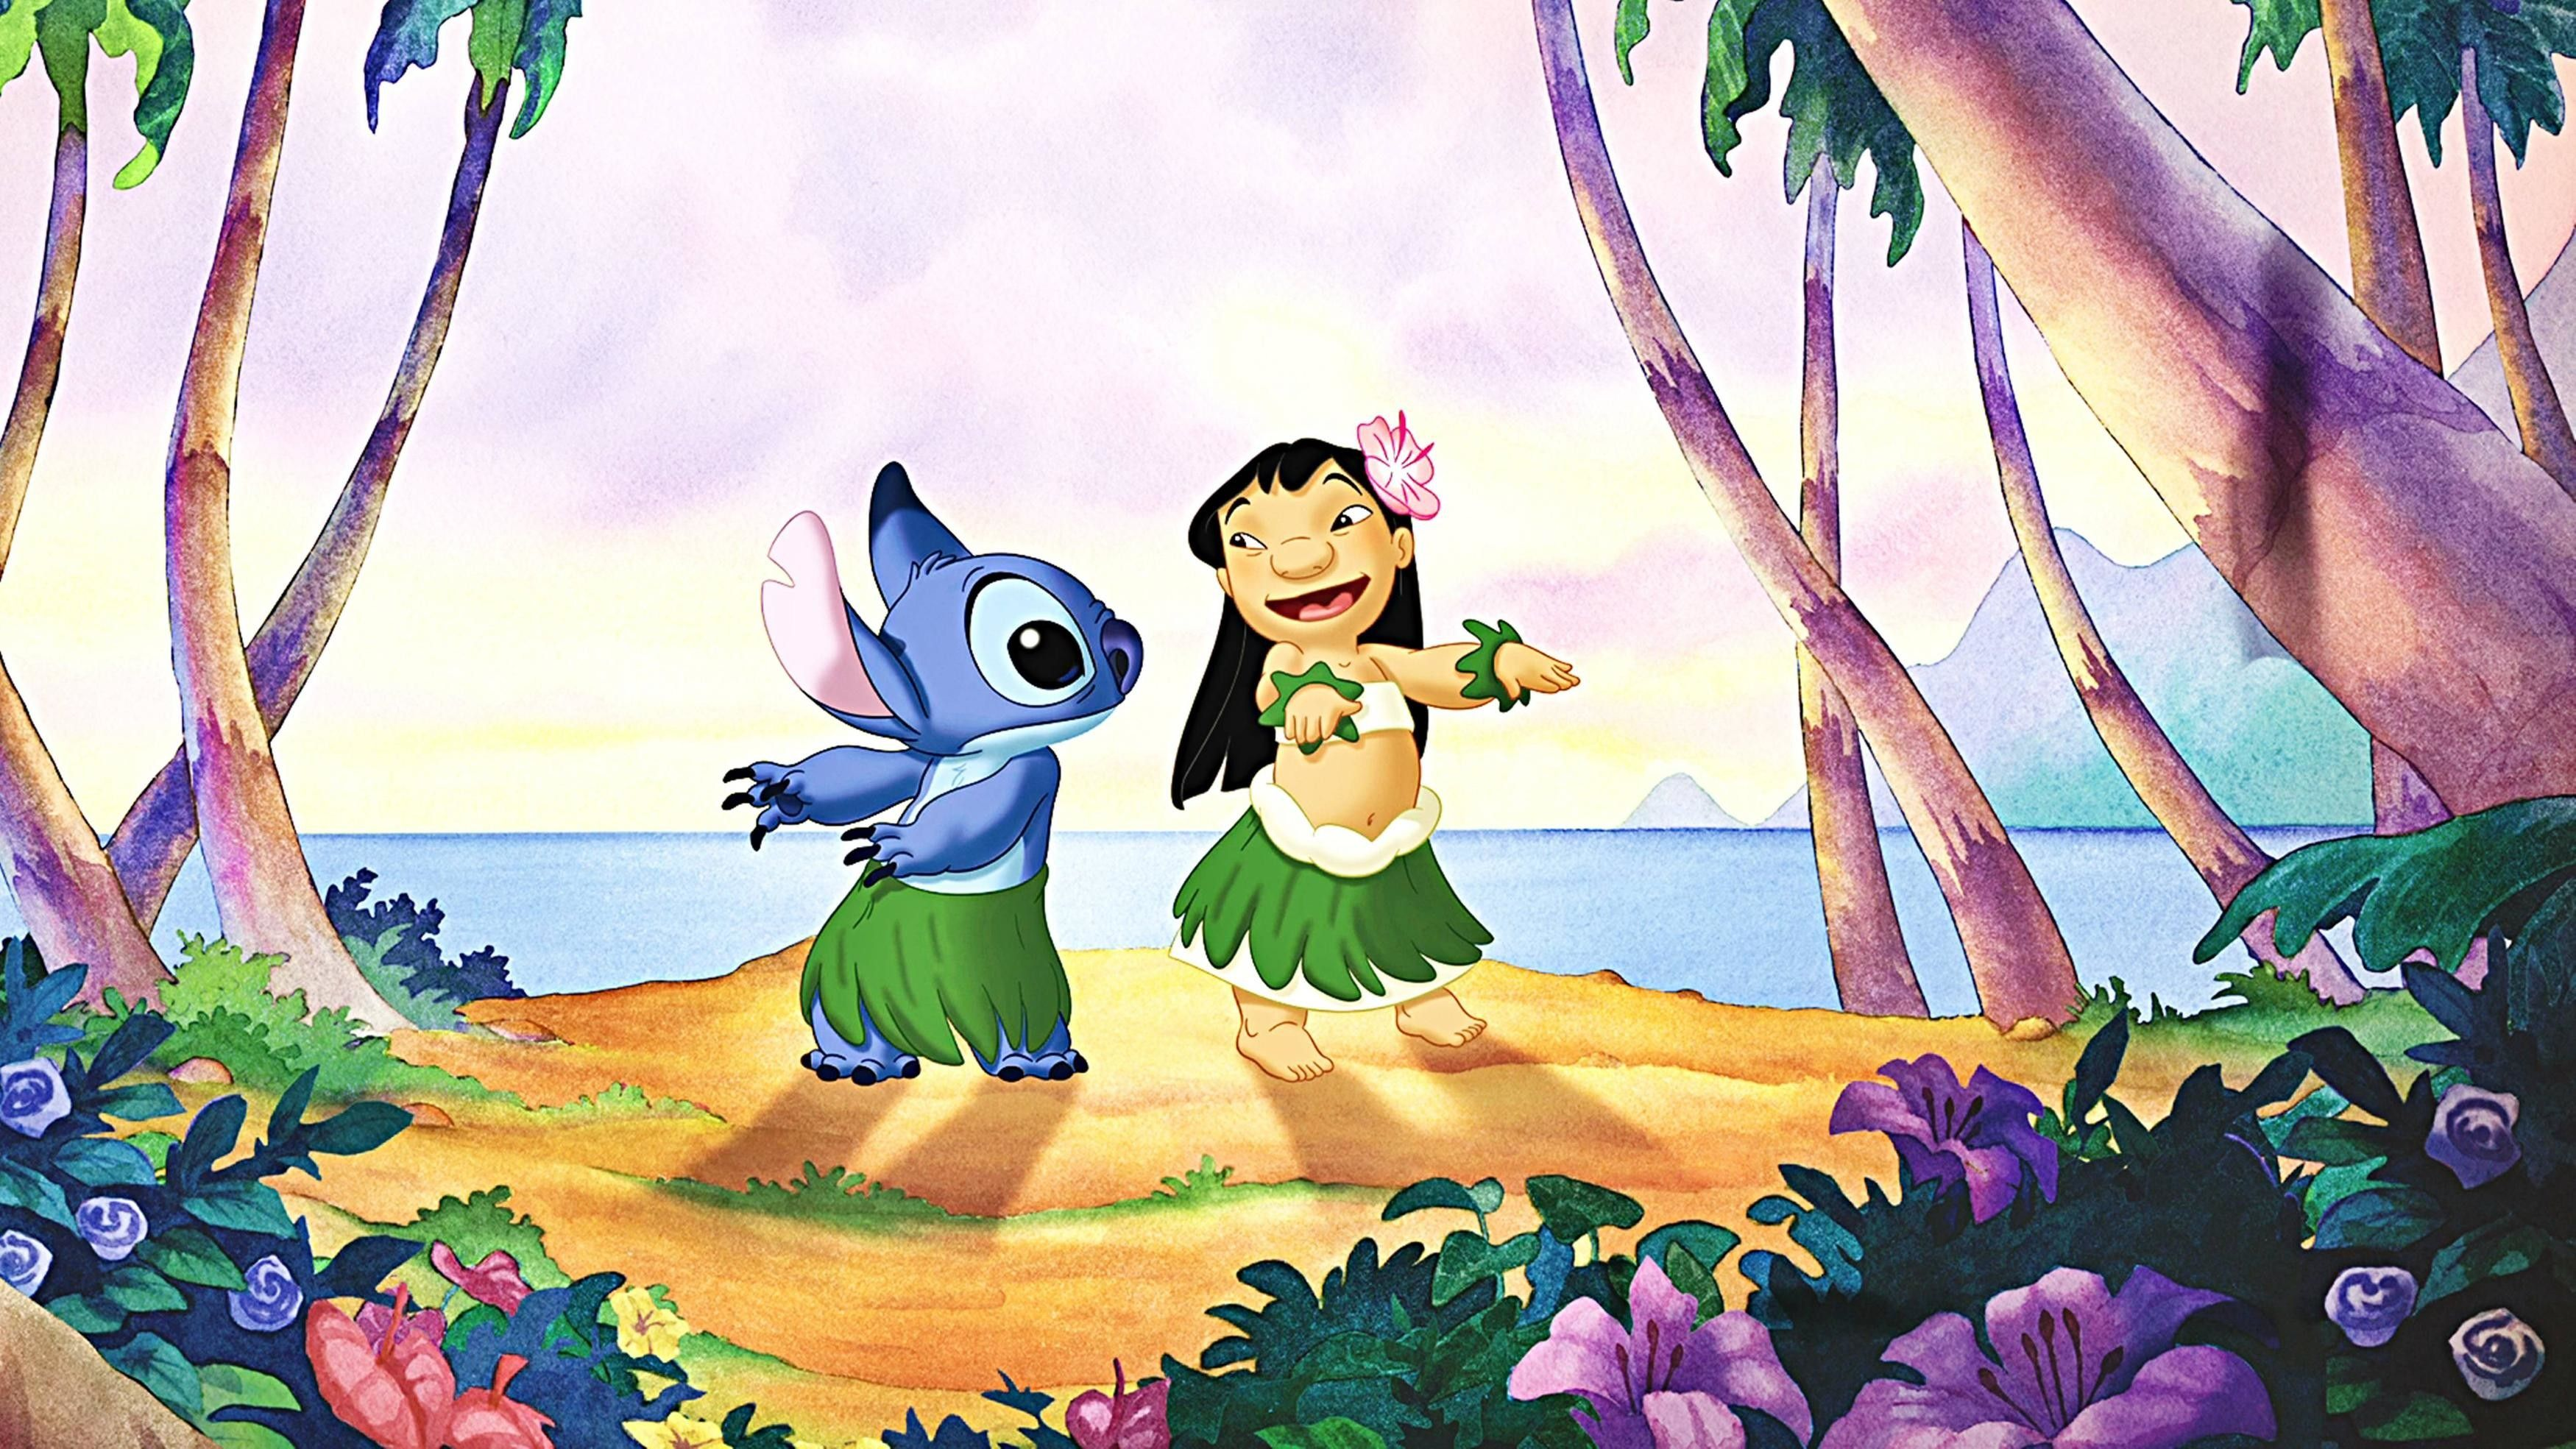 Lilo and Stitch Wallpaper Desktop (62+ imágenes)